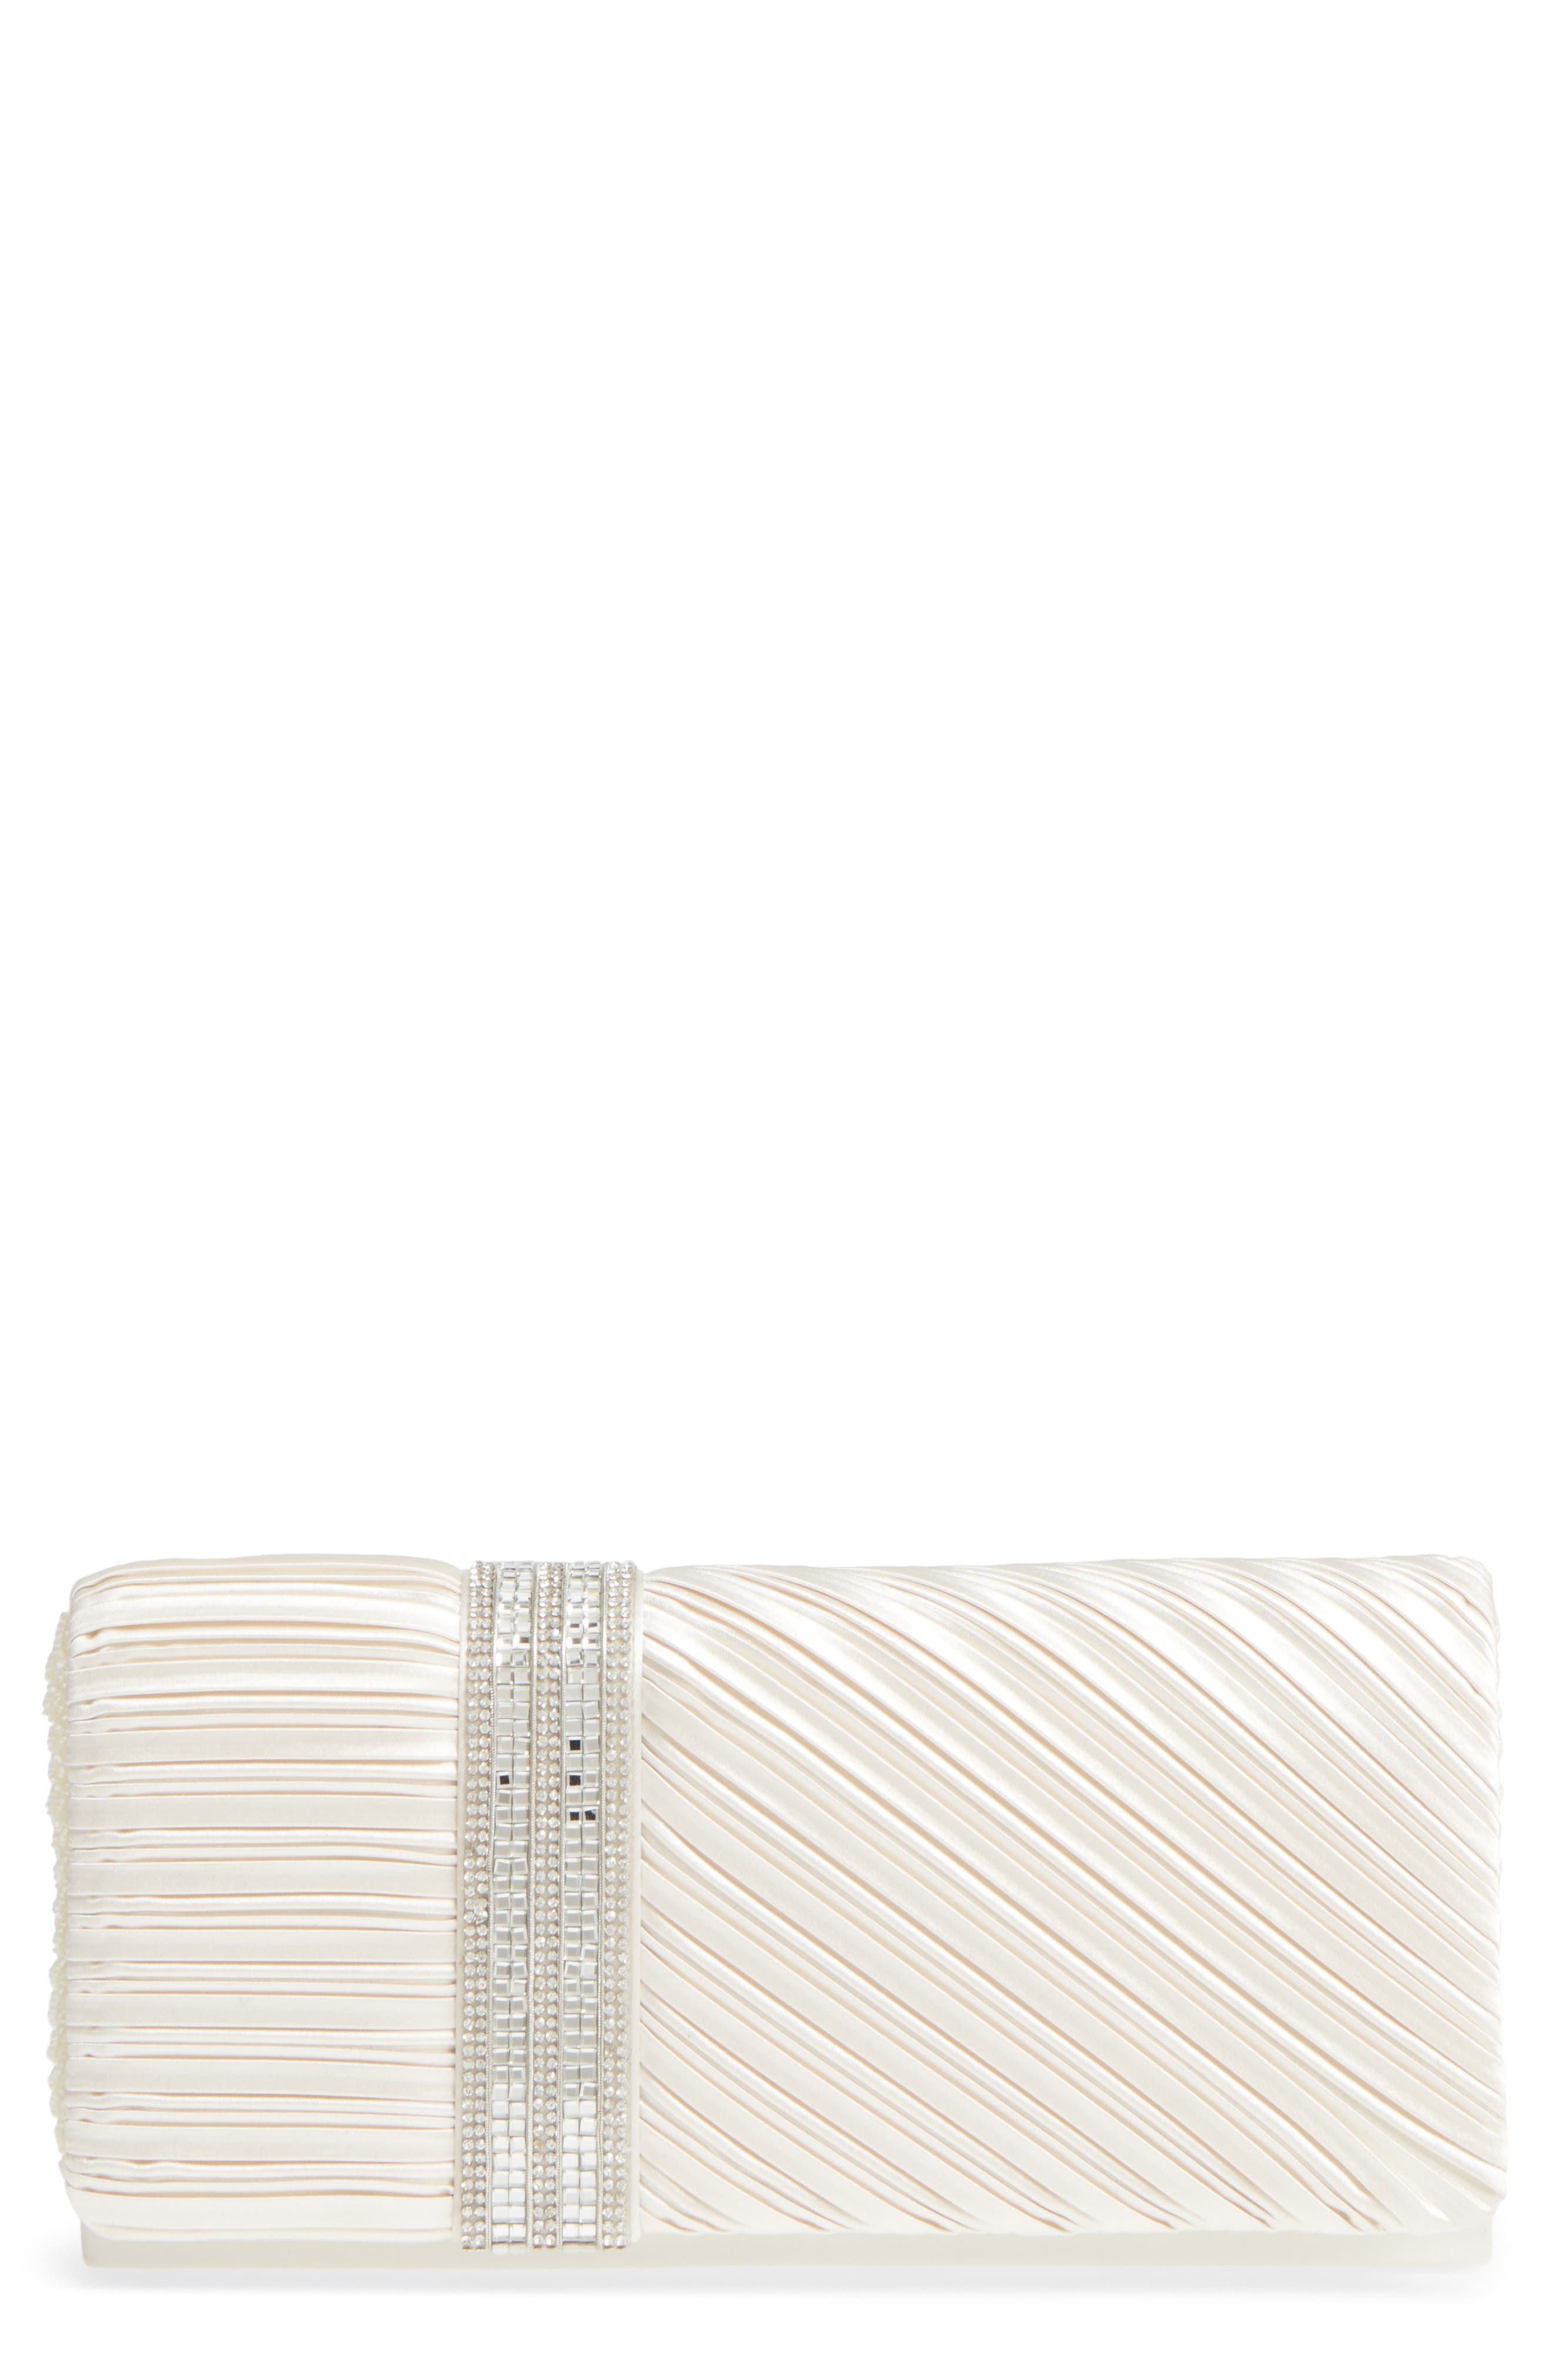 Daylie Pleated Satin Clutch,                             Main thumbnail 1, color,                             Ivory